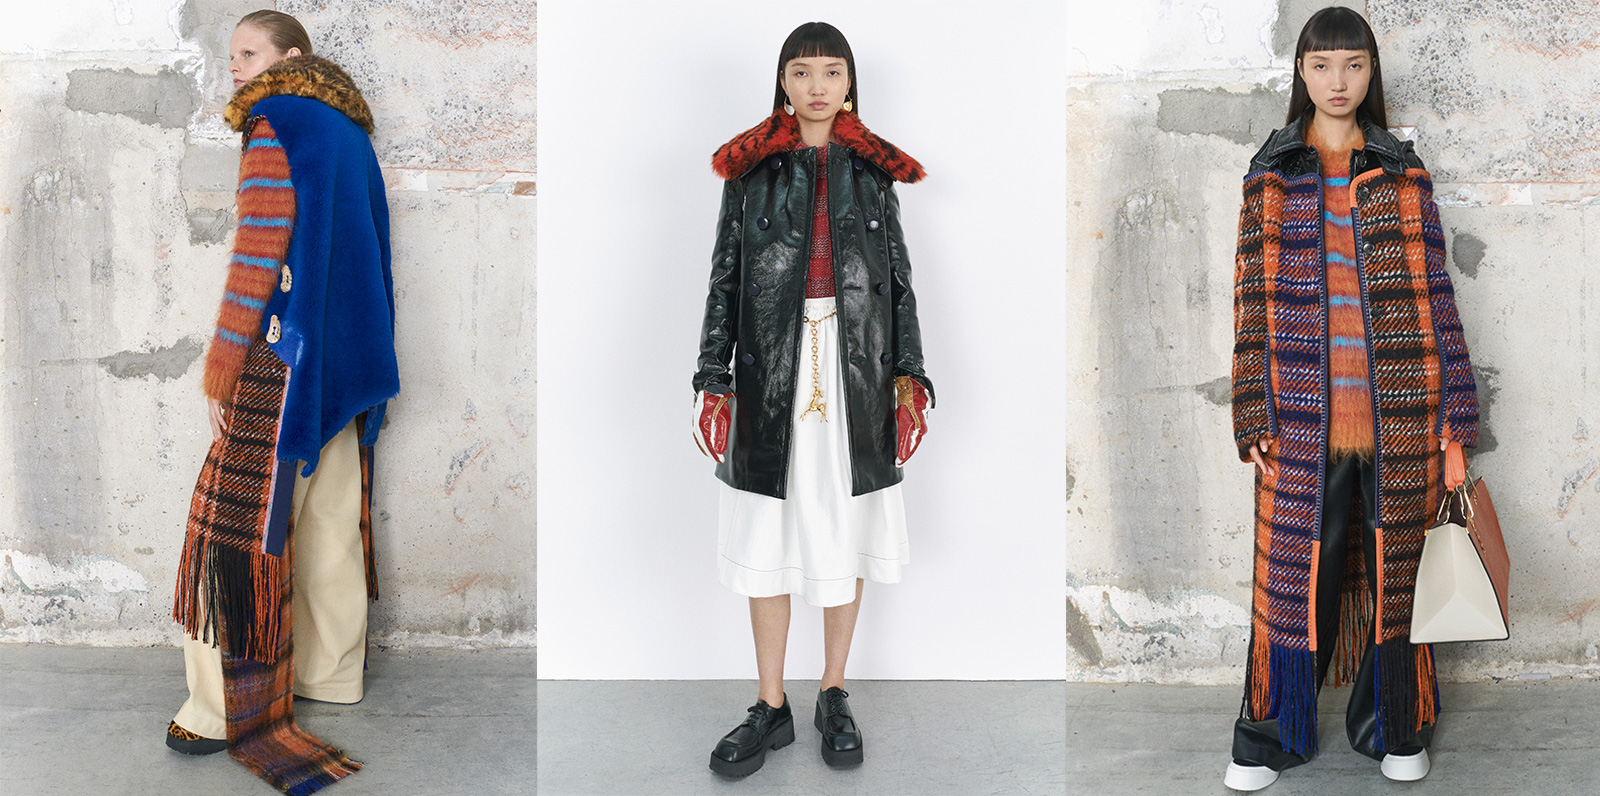 d92ea200 Marni Pre Fall 19 collection now available at Dover Street Market Los  Angeles.